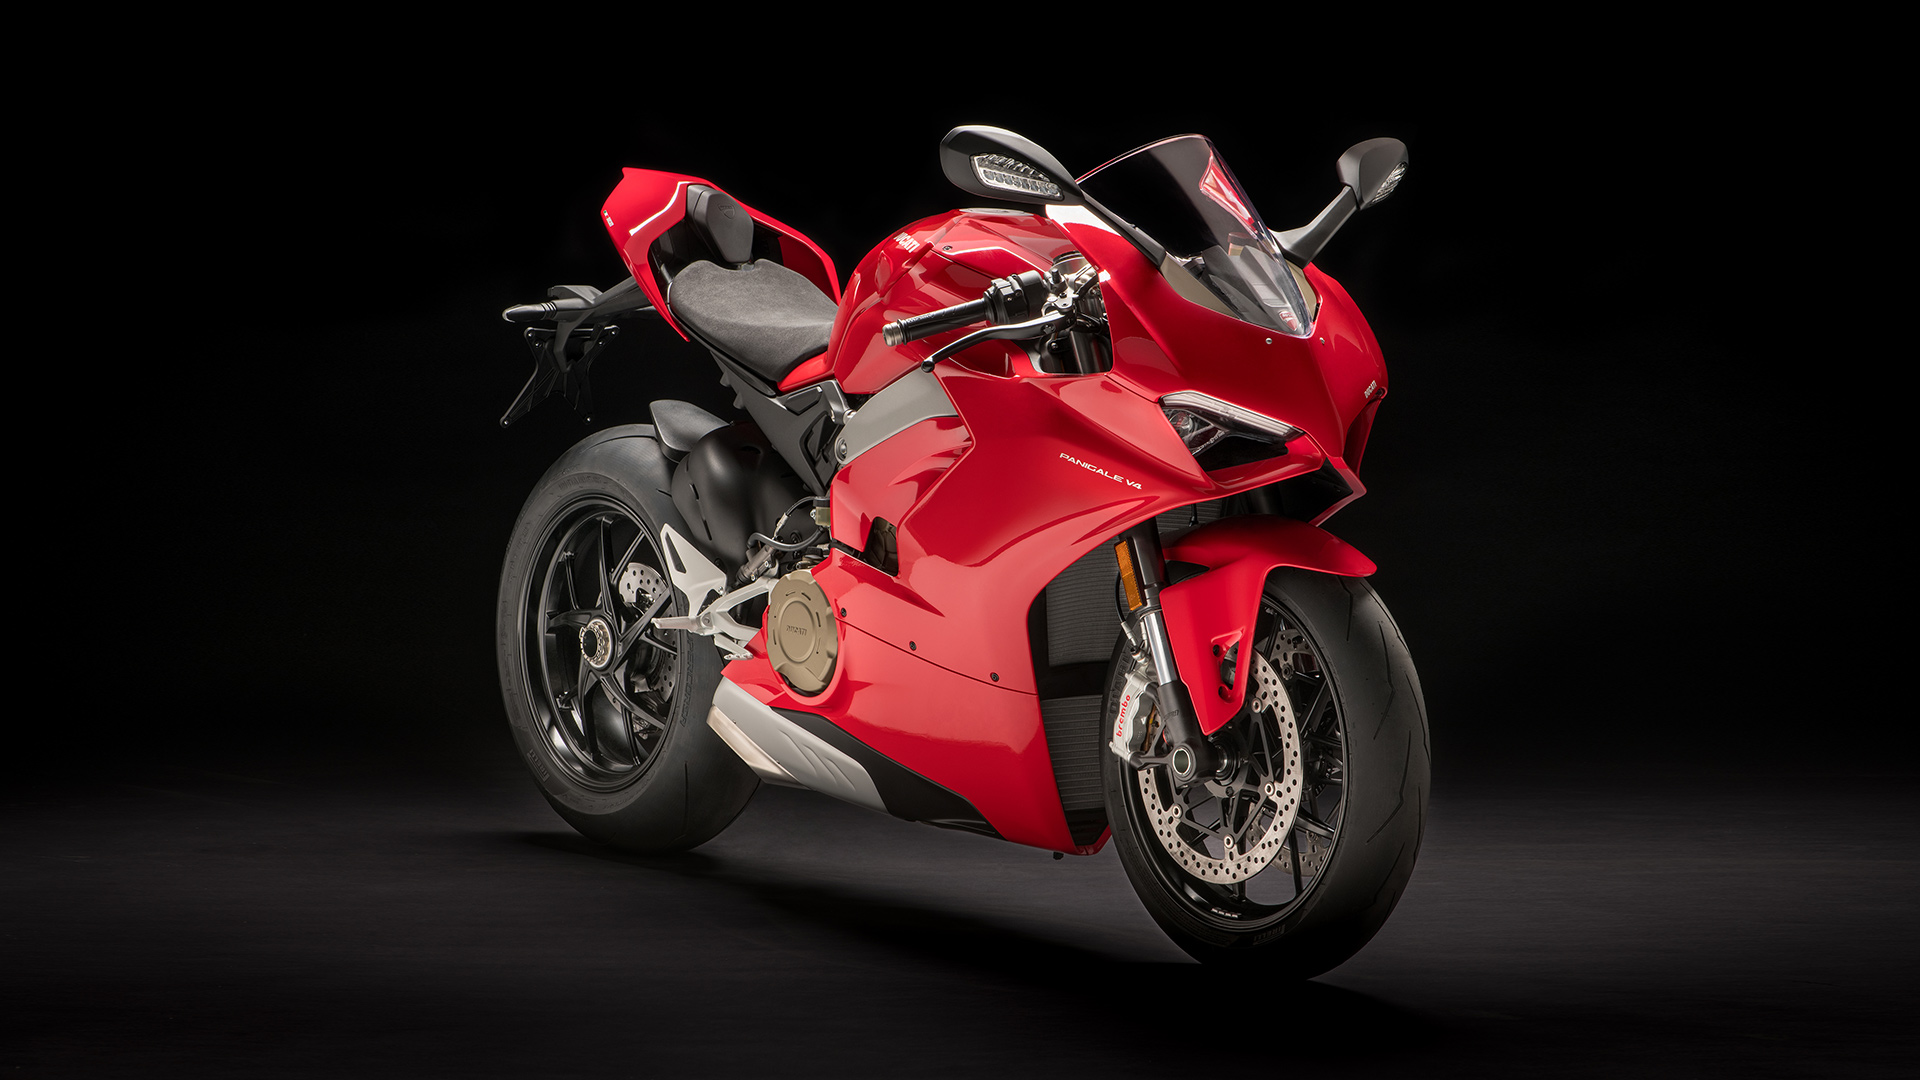 Panigale-V4-MY18-Red-01-Slider-Gallery-1920x1080.jpg